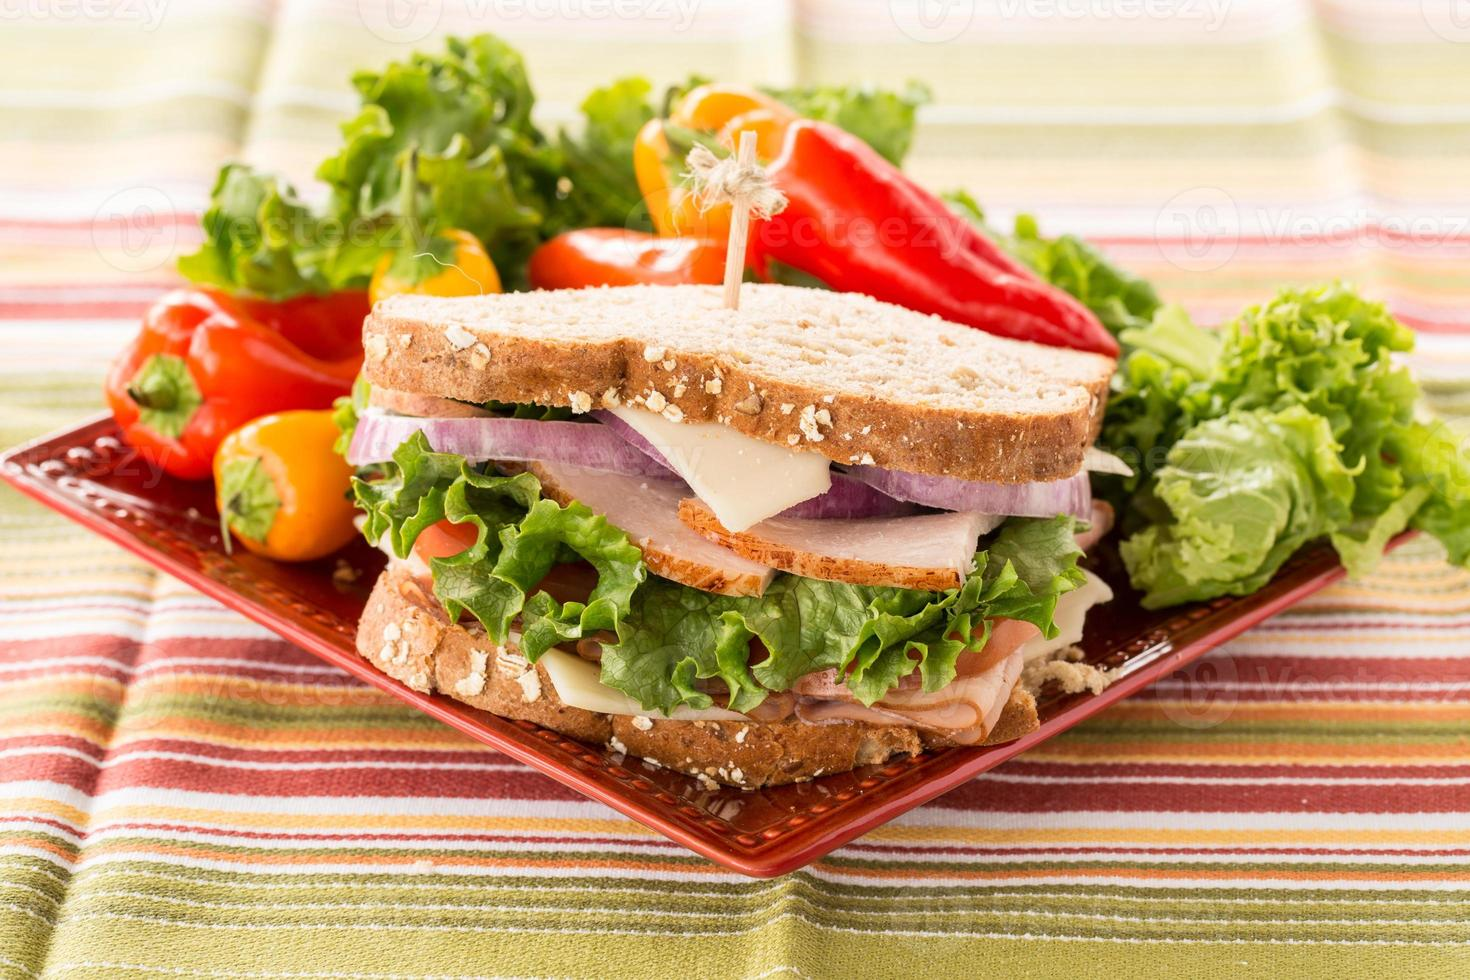 Colorful Healthy Lunch Sandwich With Sweet Peppers On Plate photo